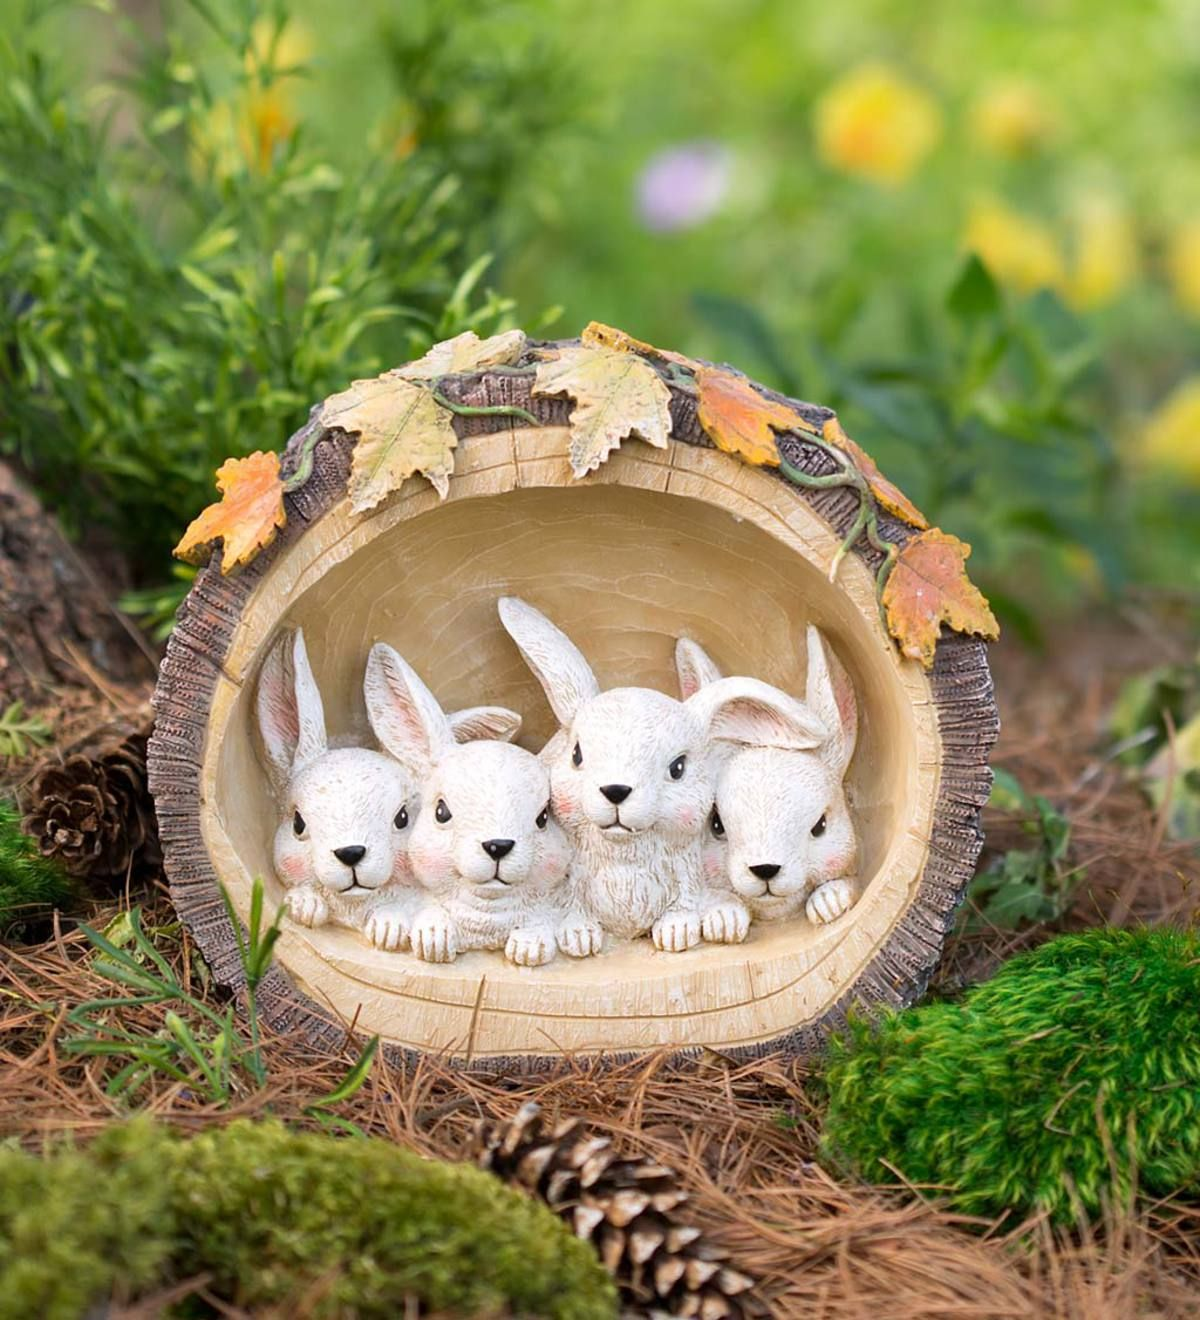 Our Bunnies In A Log Adds A Sweet Woodland Touch Interior Led Lights Emit A Warm Glow Highlighting The Little Bunny Faces Garden Statues Bunny Garden Decor